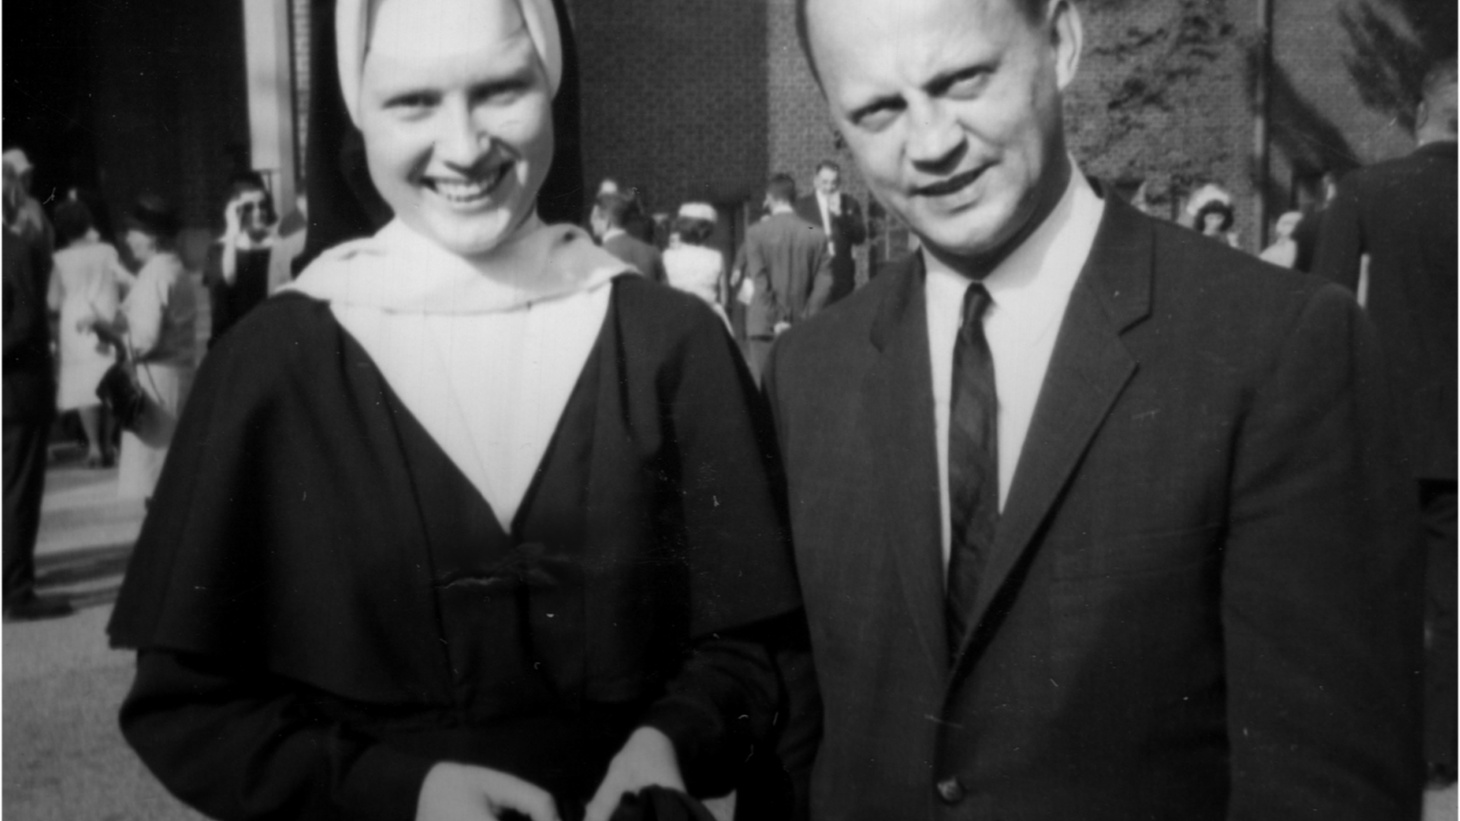 """The seven-part documentary series """"The Keepers"""" follows the 1969 unsolved murder case of Catherine Cesnik, a 26-year-old nun and teacher in Baltimore."""